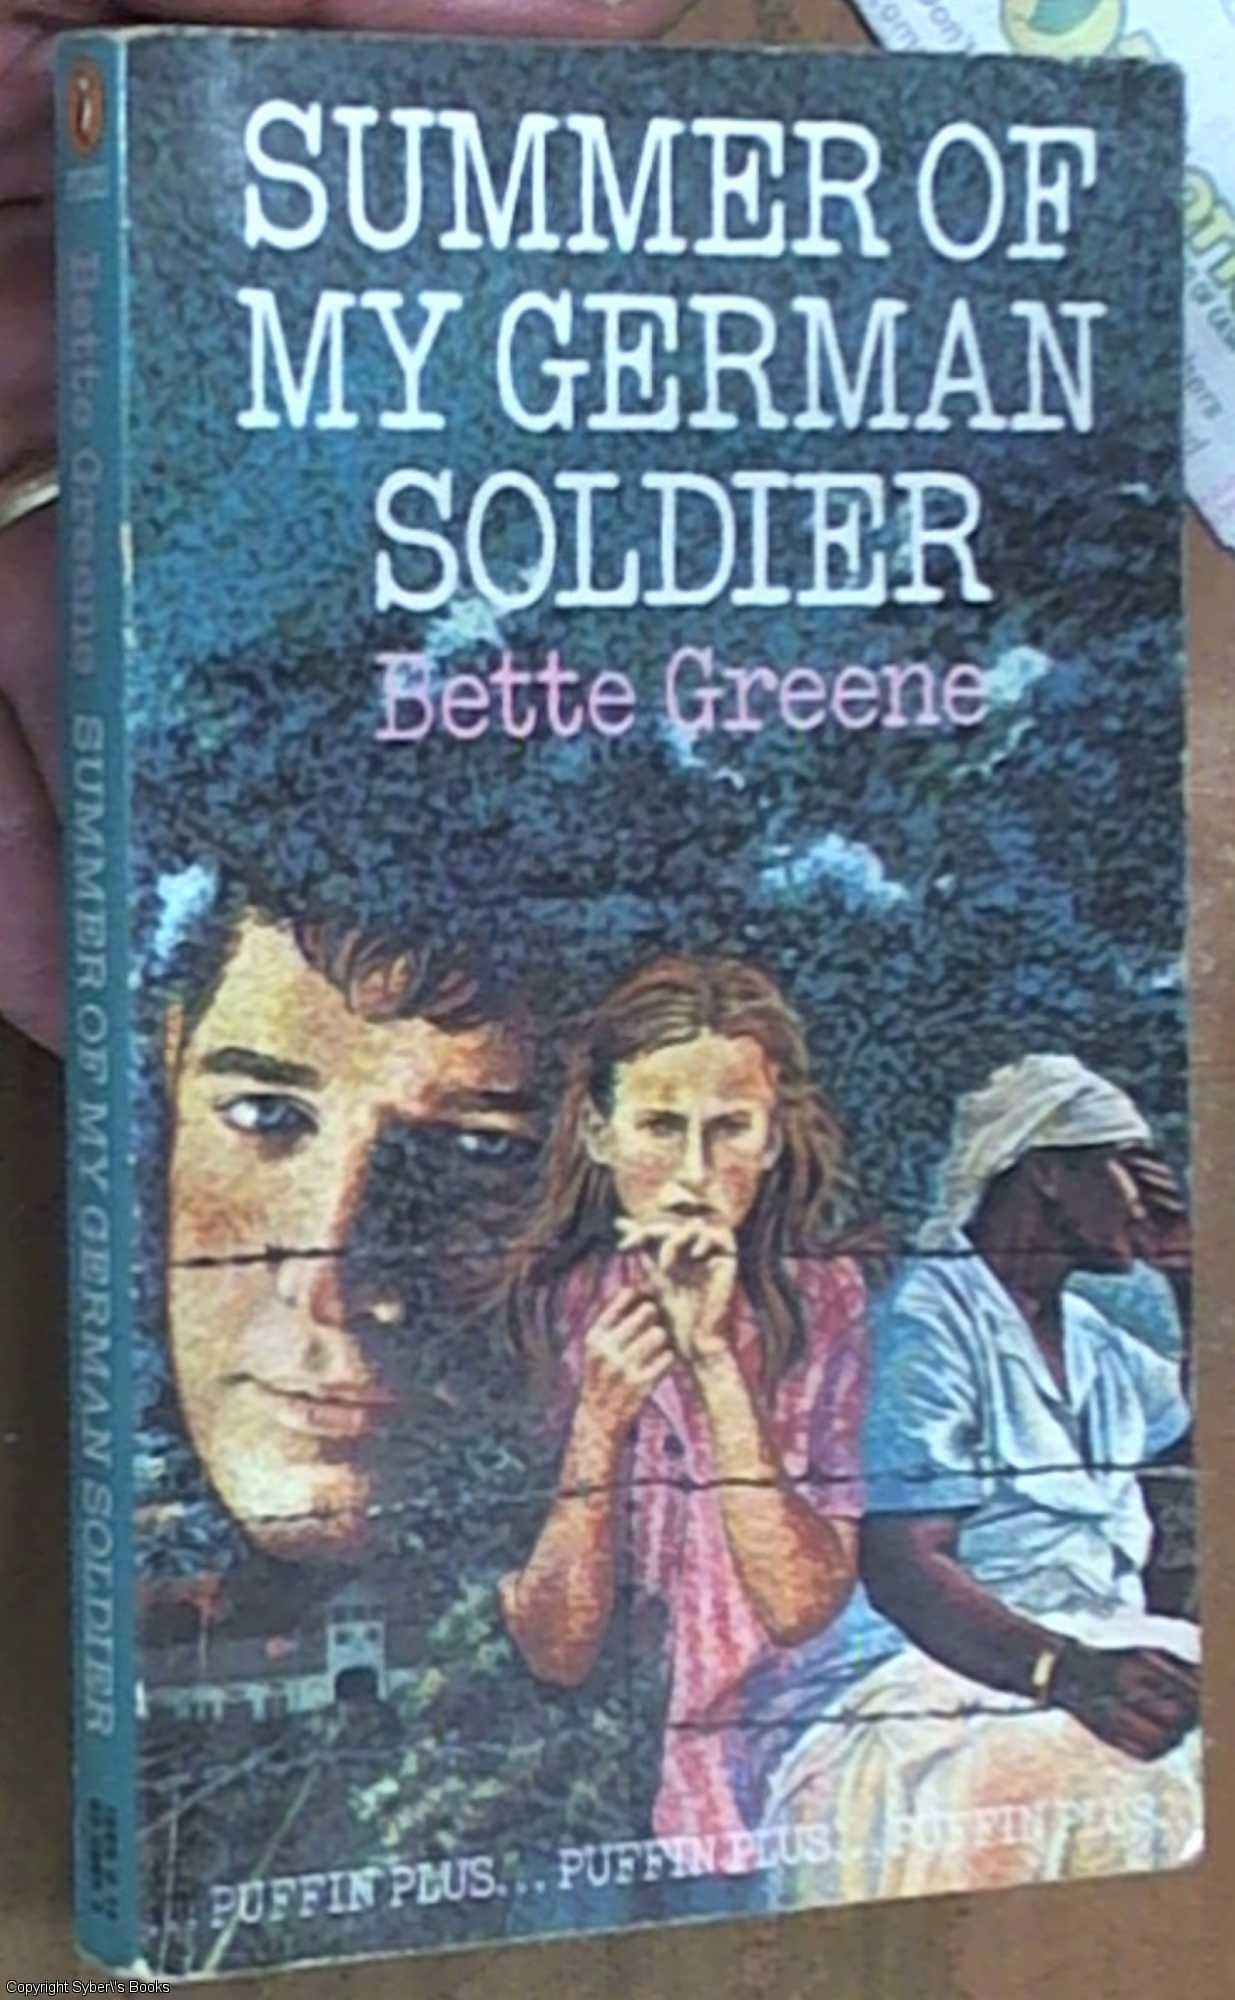 a comparison of the book and movie of a summer of my german soldier Summer of my german soldier by bette greene read the book 10 pts watch the movie and compare and contrast it to the book.